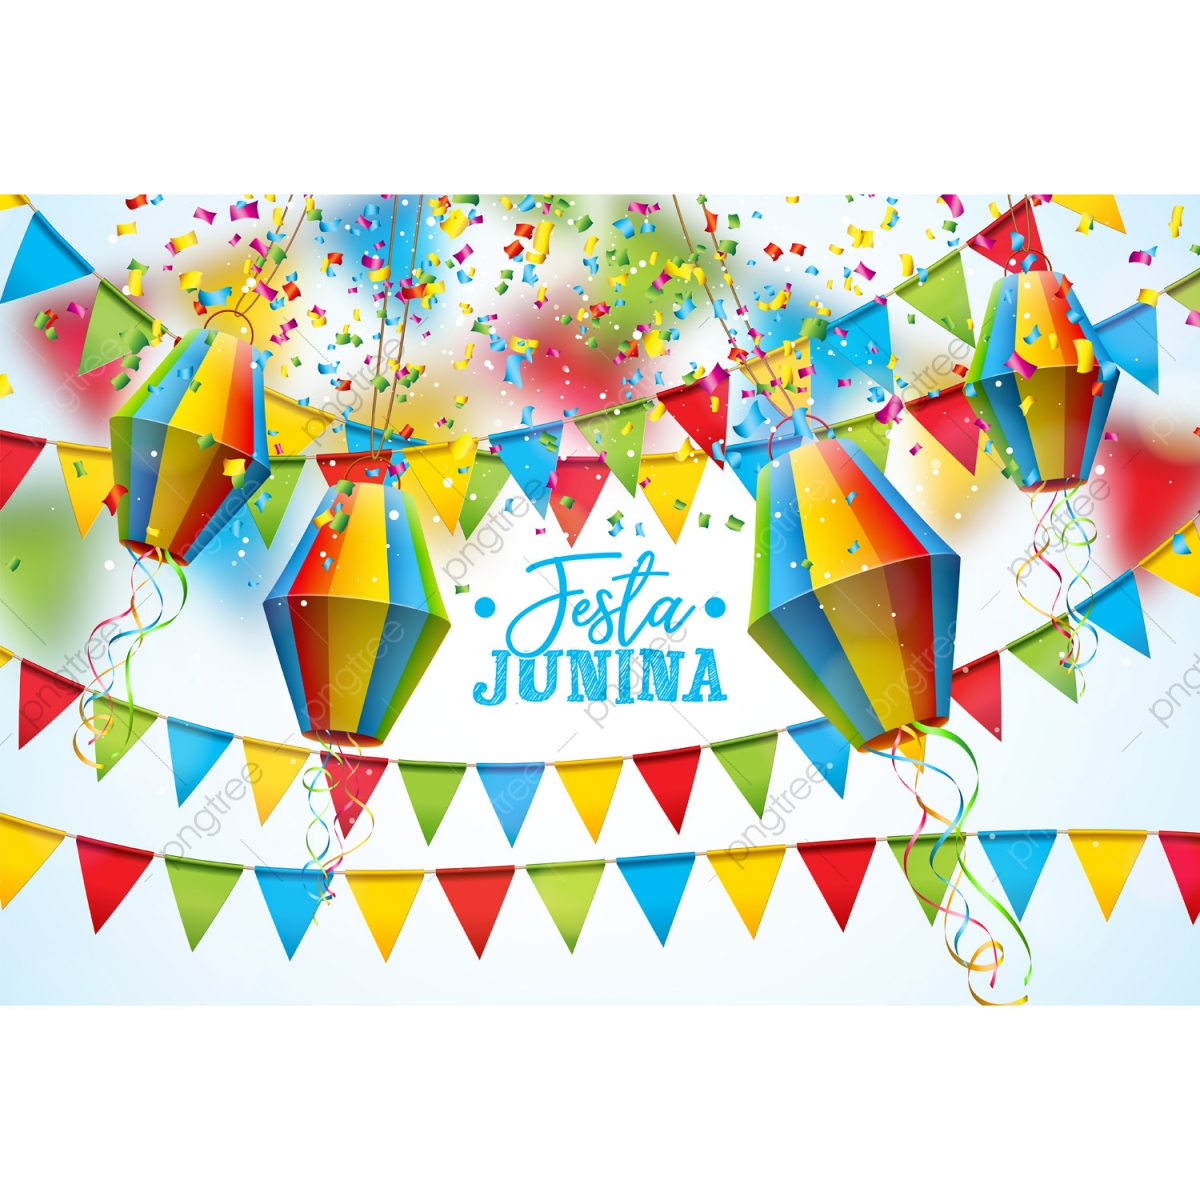 Festa Junina Illustration With Party Flags And Paper Lantern On.